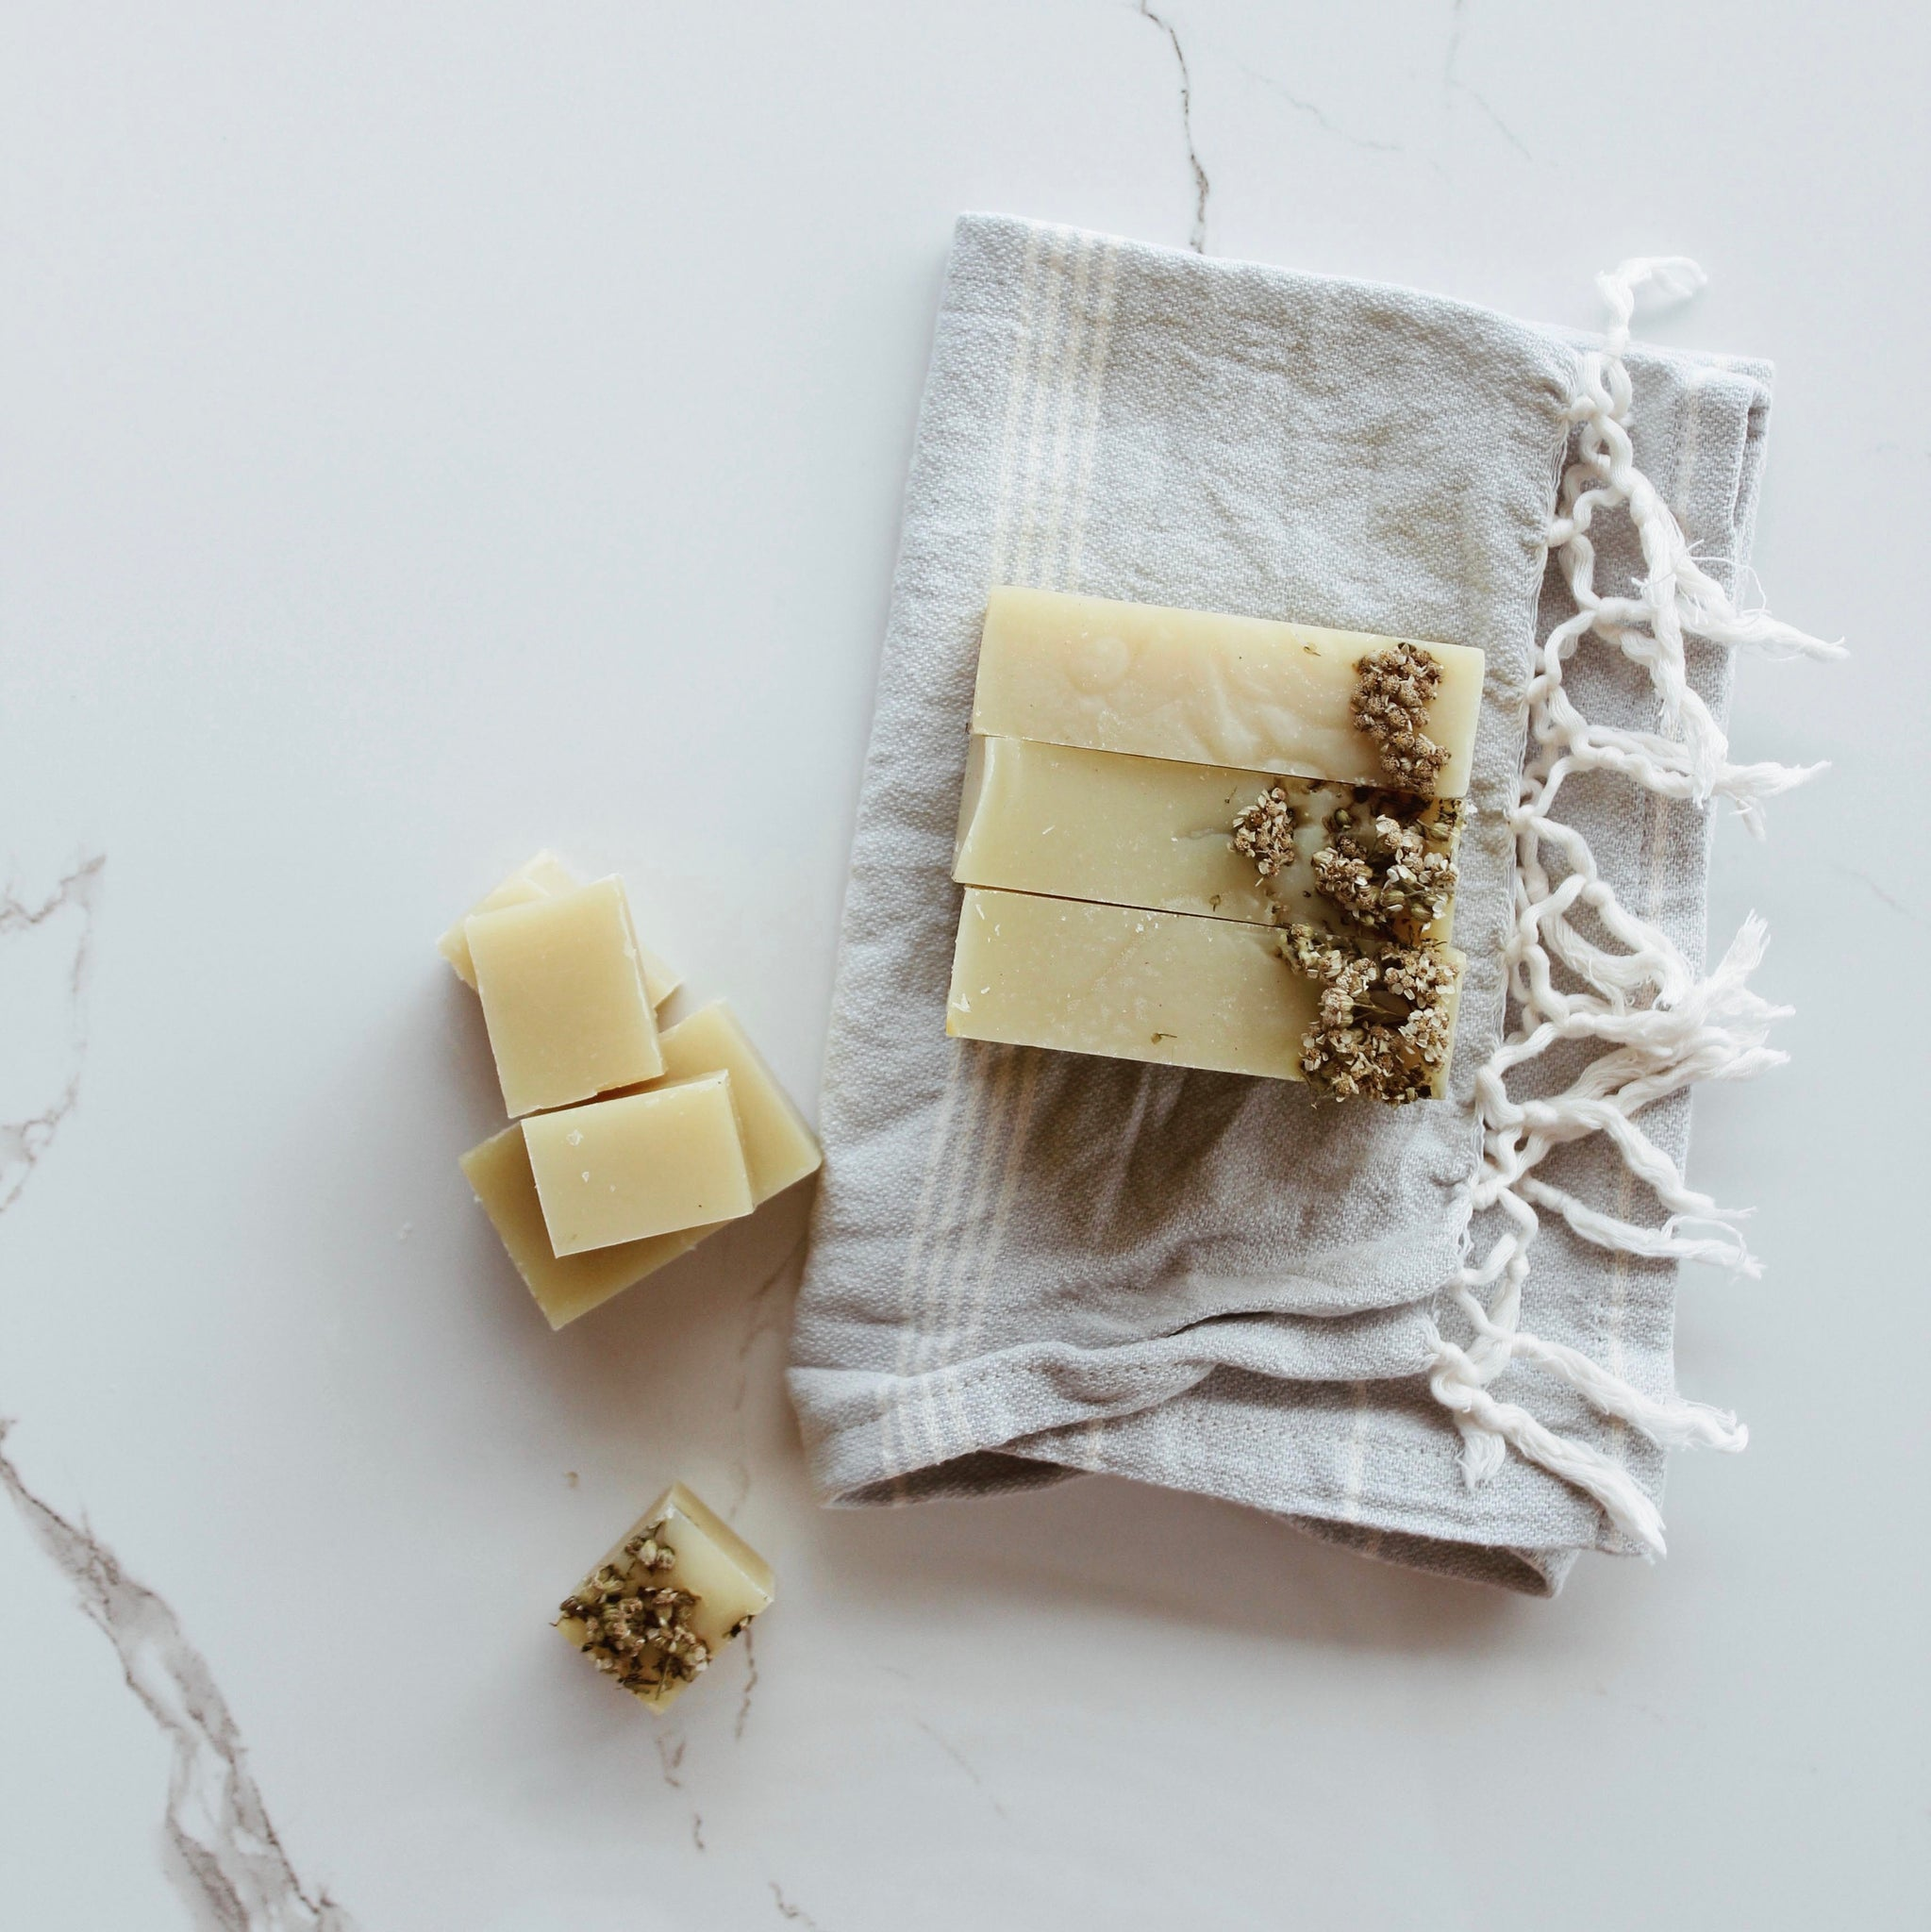 Yarrow & Rosemary Shampoo Bar